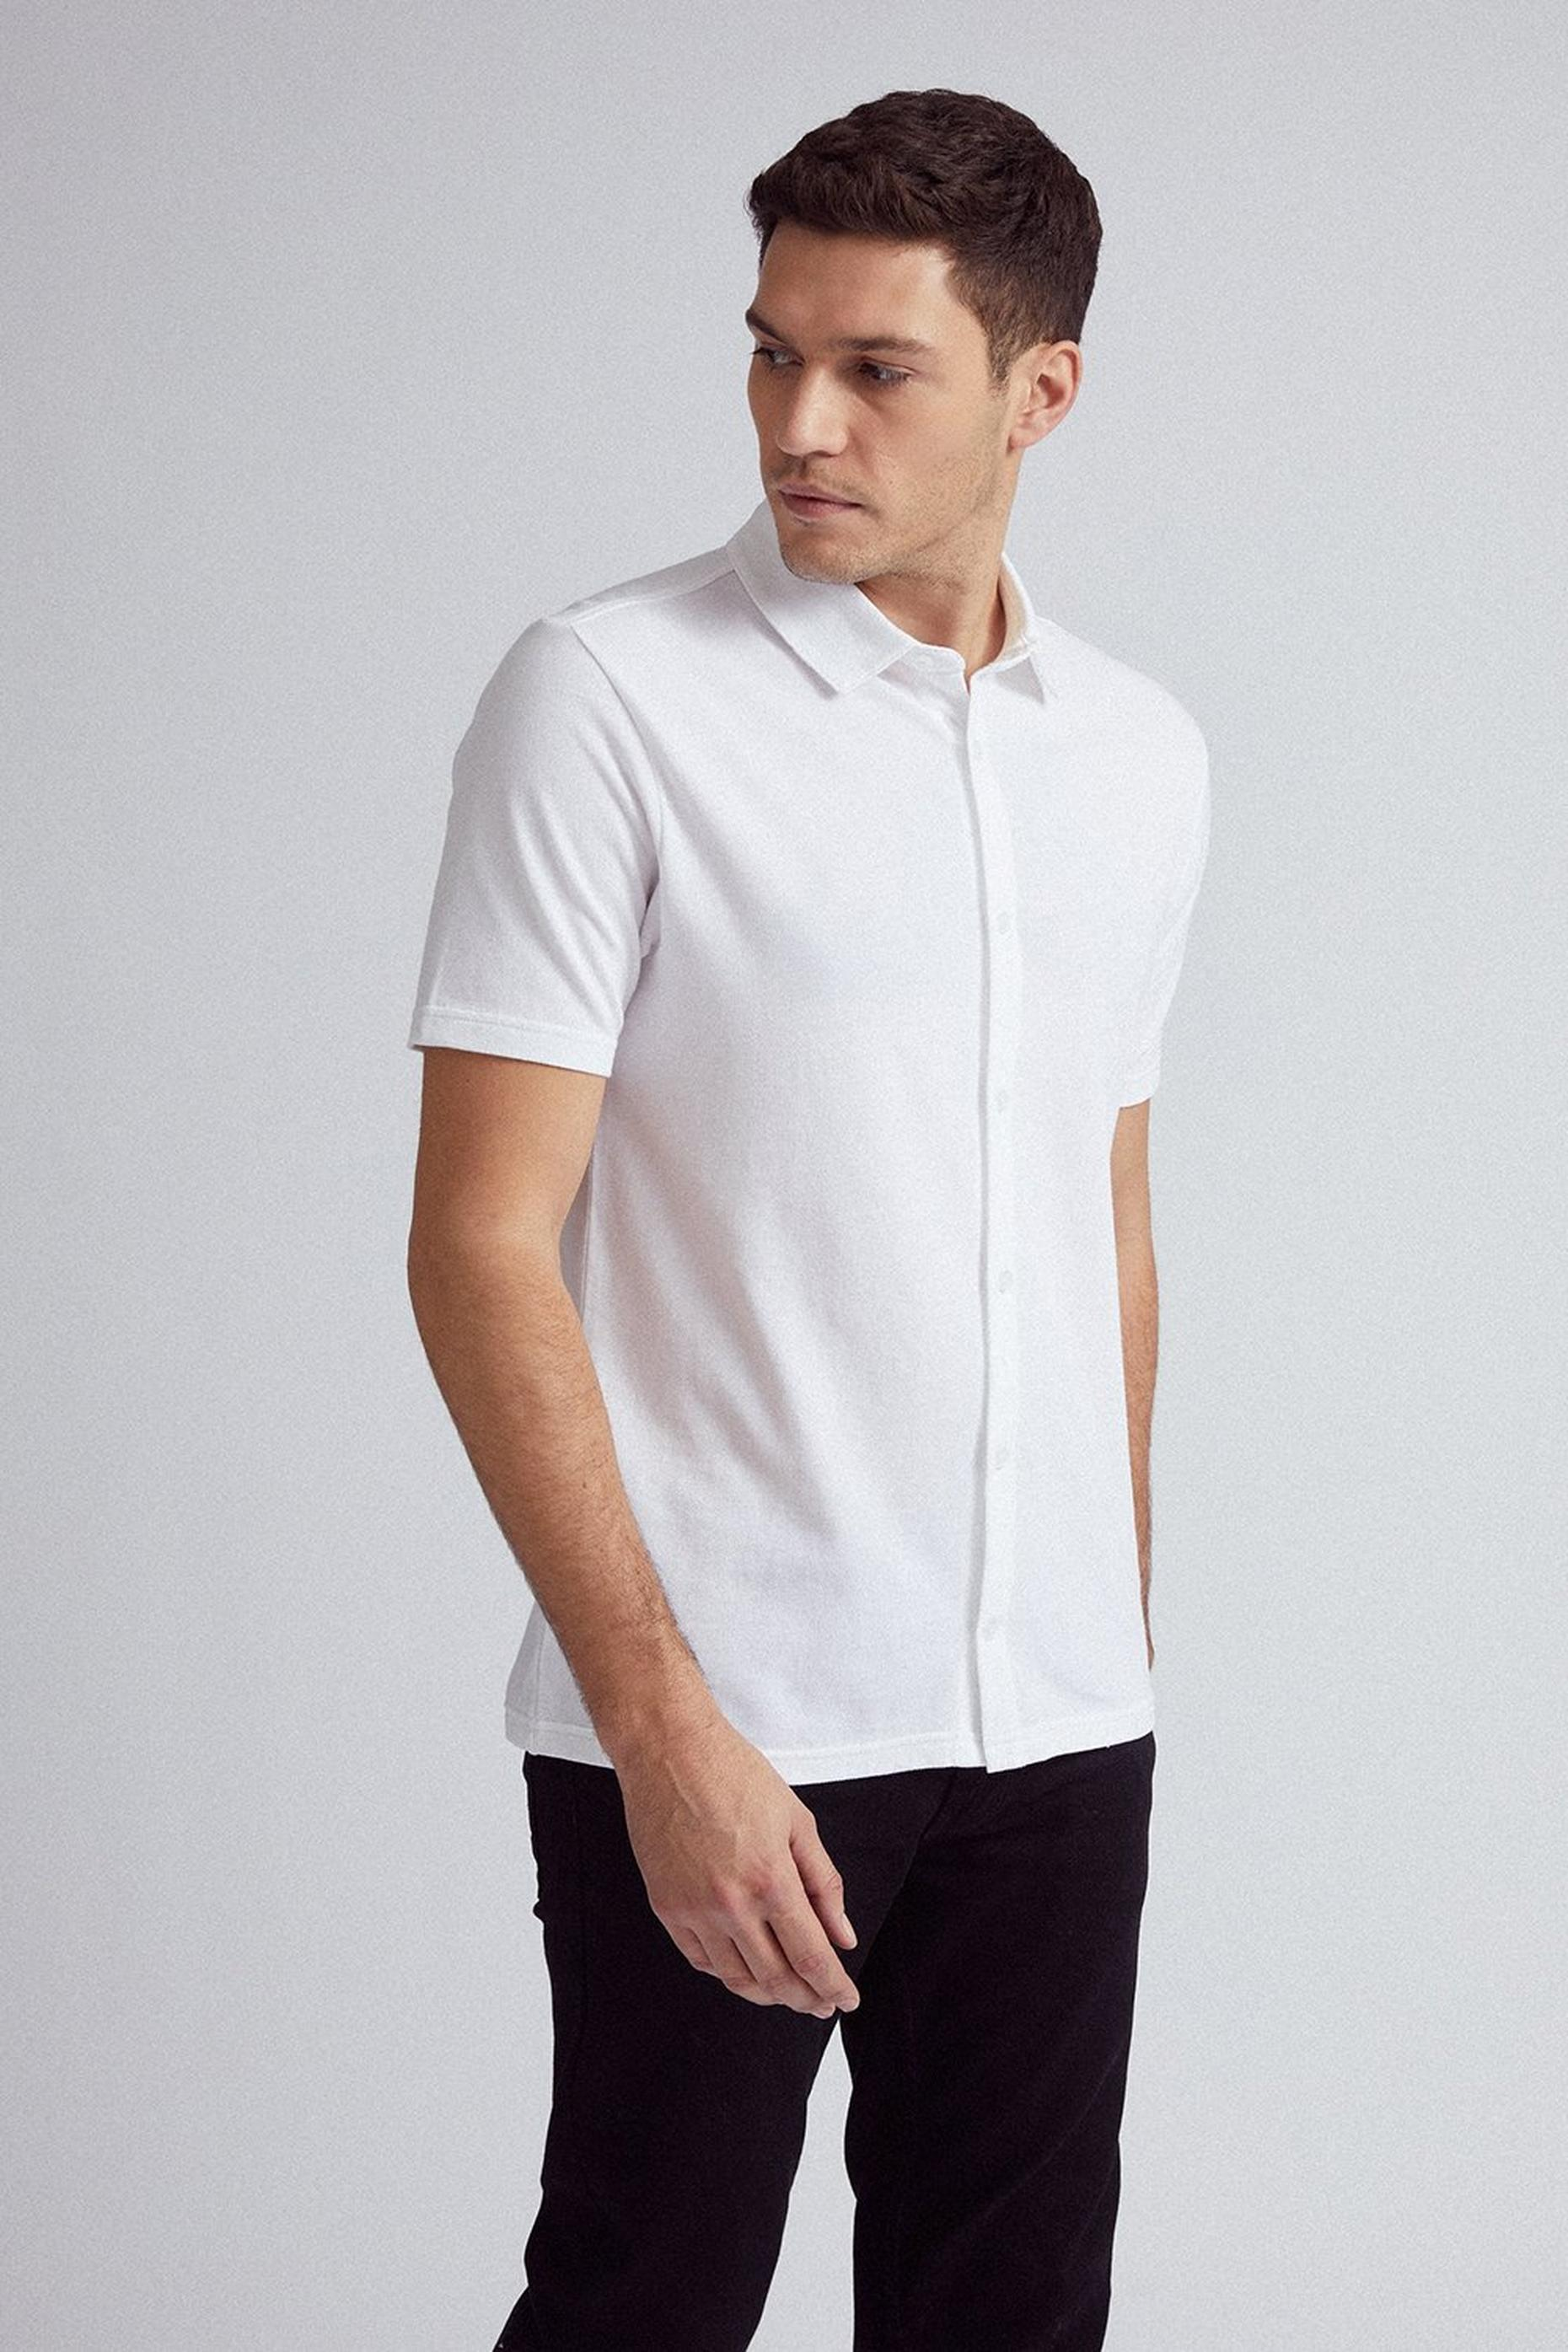 White Short Sleeve Pique Shirt